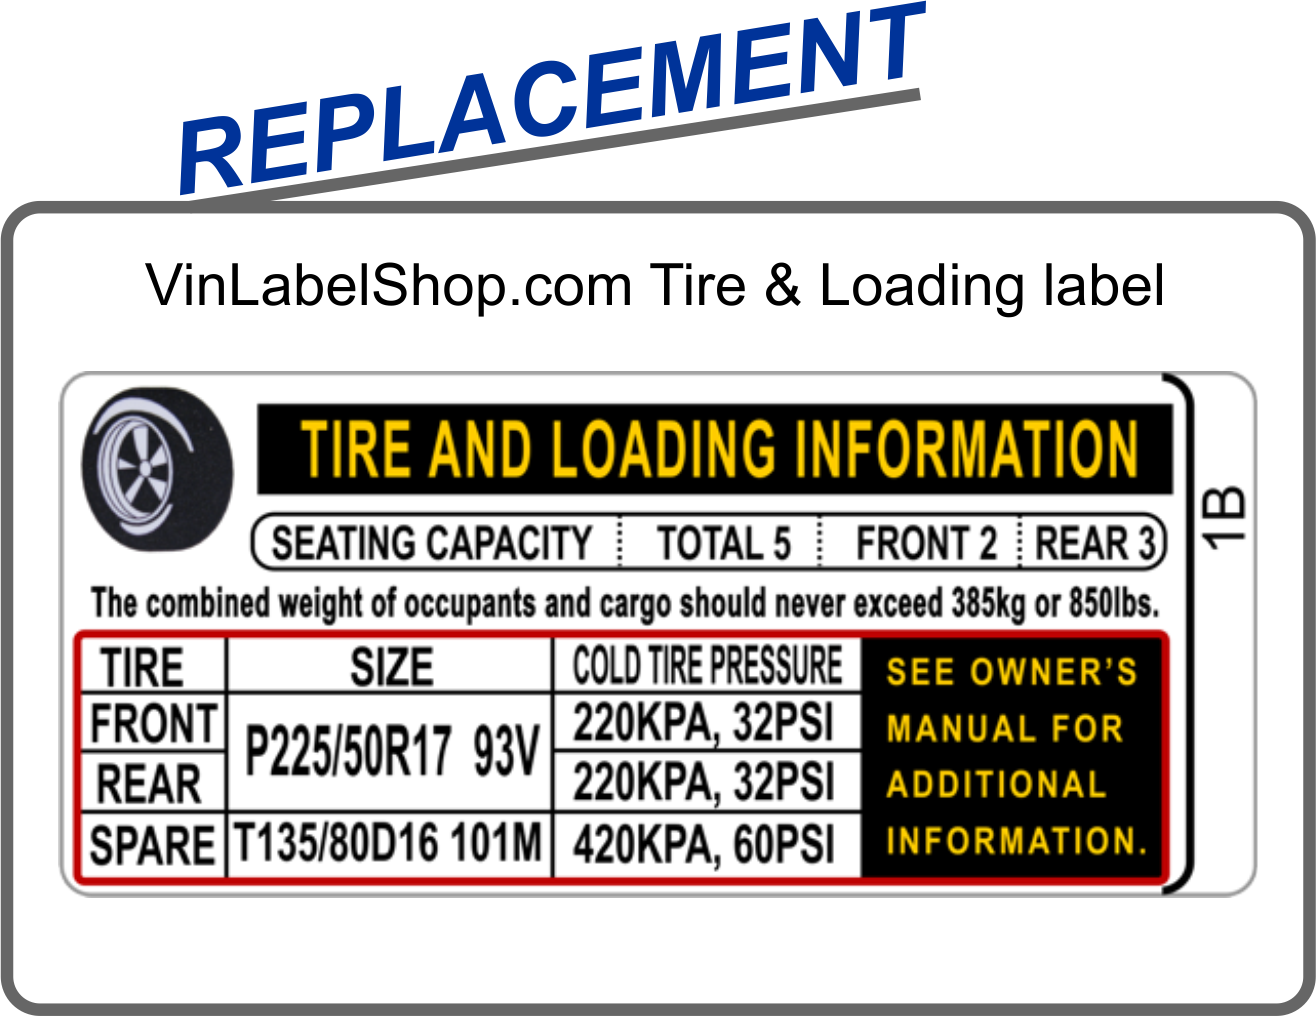 Replacement vin labels for the auto body collision repair industry